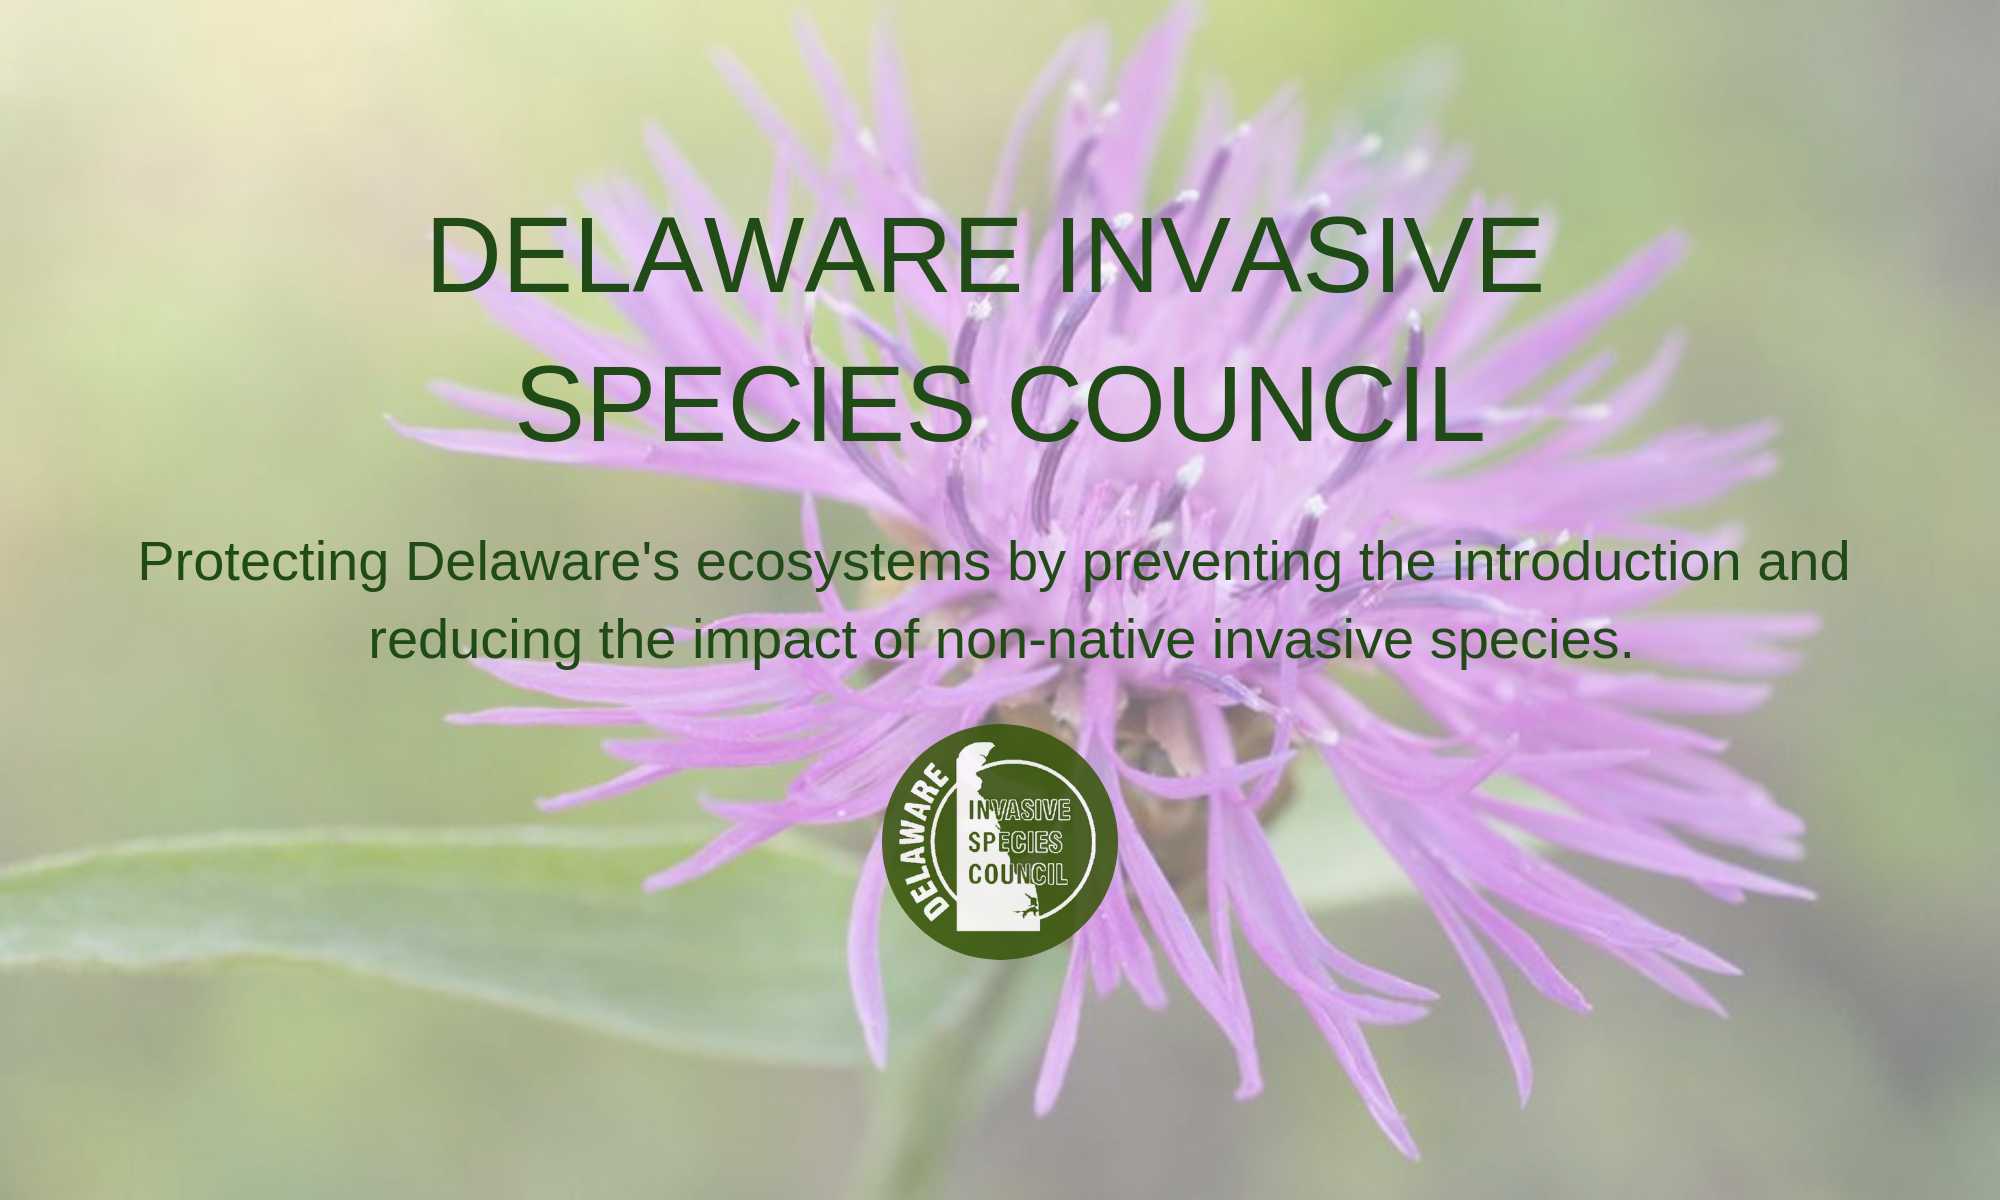 Delaware Invasive Species Council, Inc.